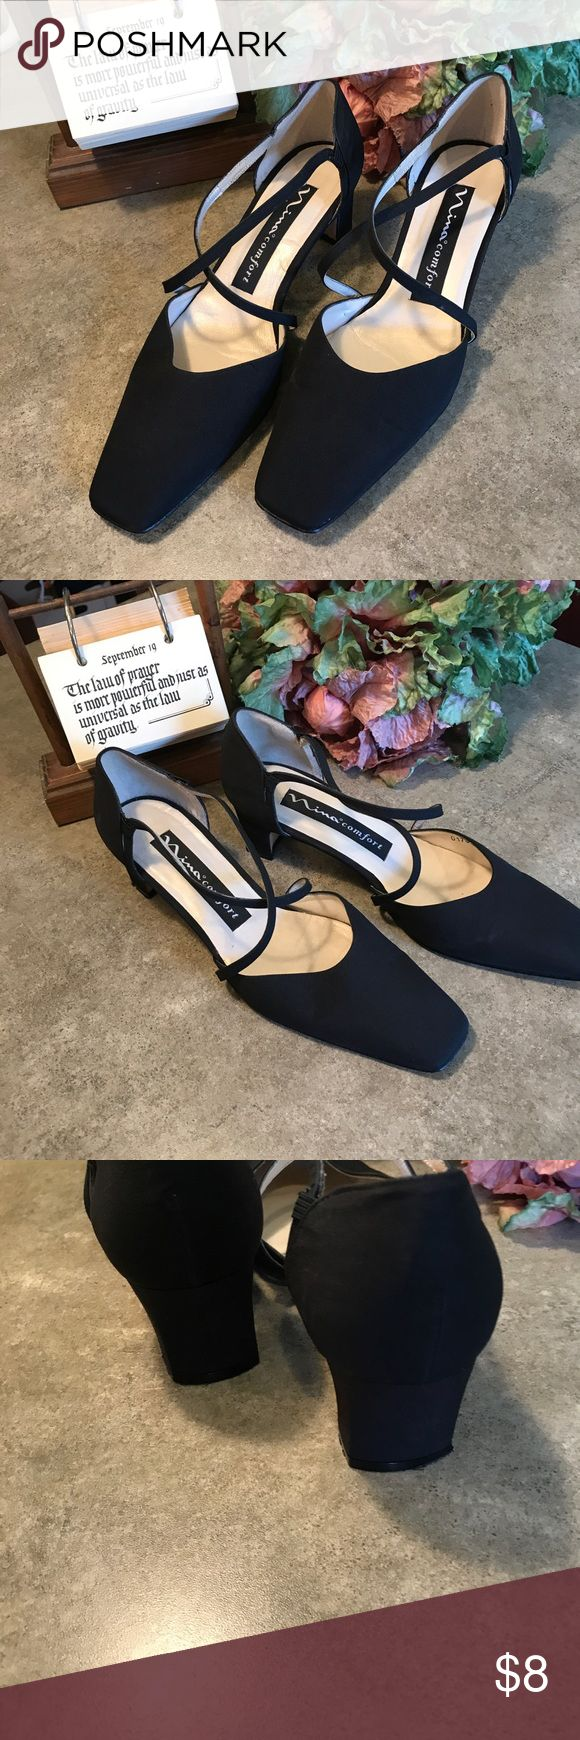 "Nina comfort Size 71/2 M upper fabric 3"" heels very good condition. They had a sole protector on the sole that's why they look so black but the sole are very good. Used no flaws elsewhere. Shoes"